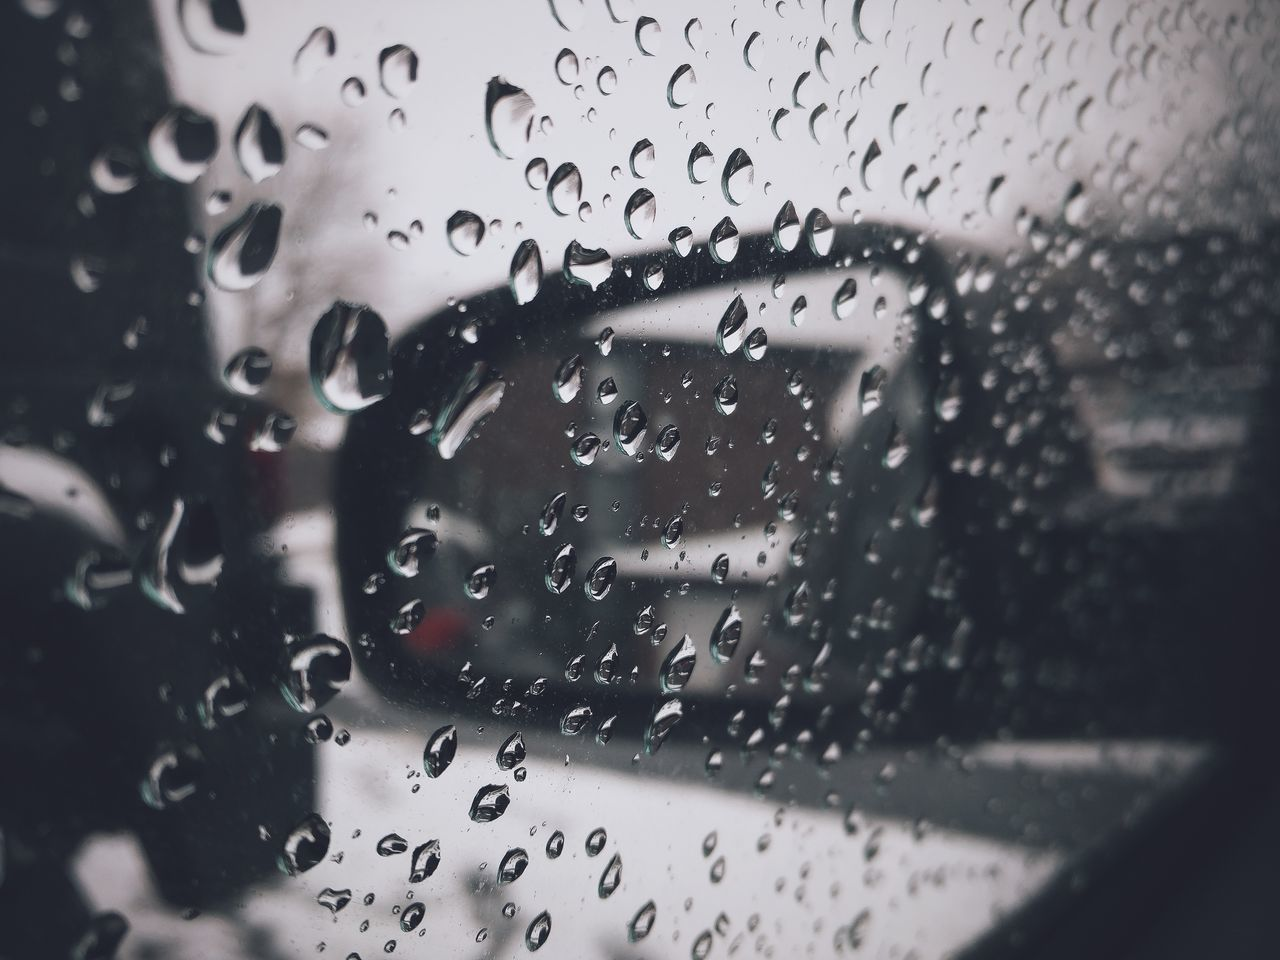 glass - material, window, transportation, drop, wet, water, transparent, rain, mode of transport, weather, vehicle interior, focus on foreground, windshield, land vehicle, no people, car, looking through window, close-up, day, airplane, sky, indoors, raindrop, airplane wing